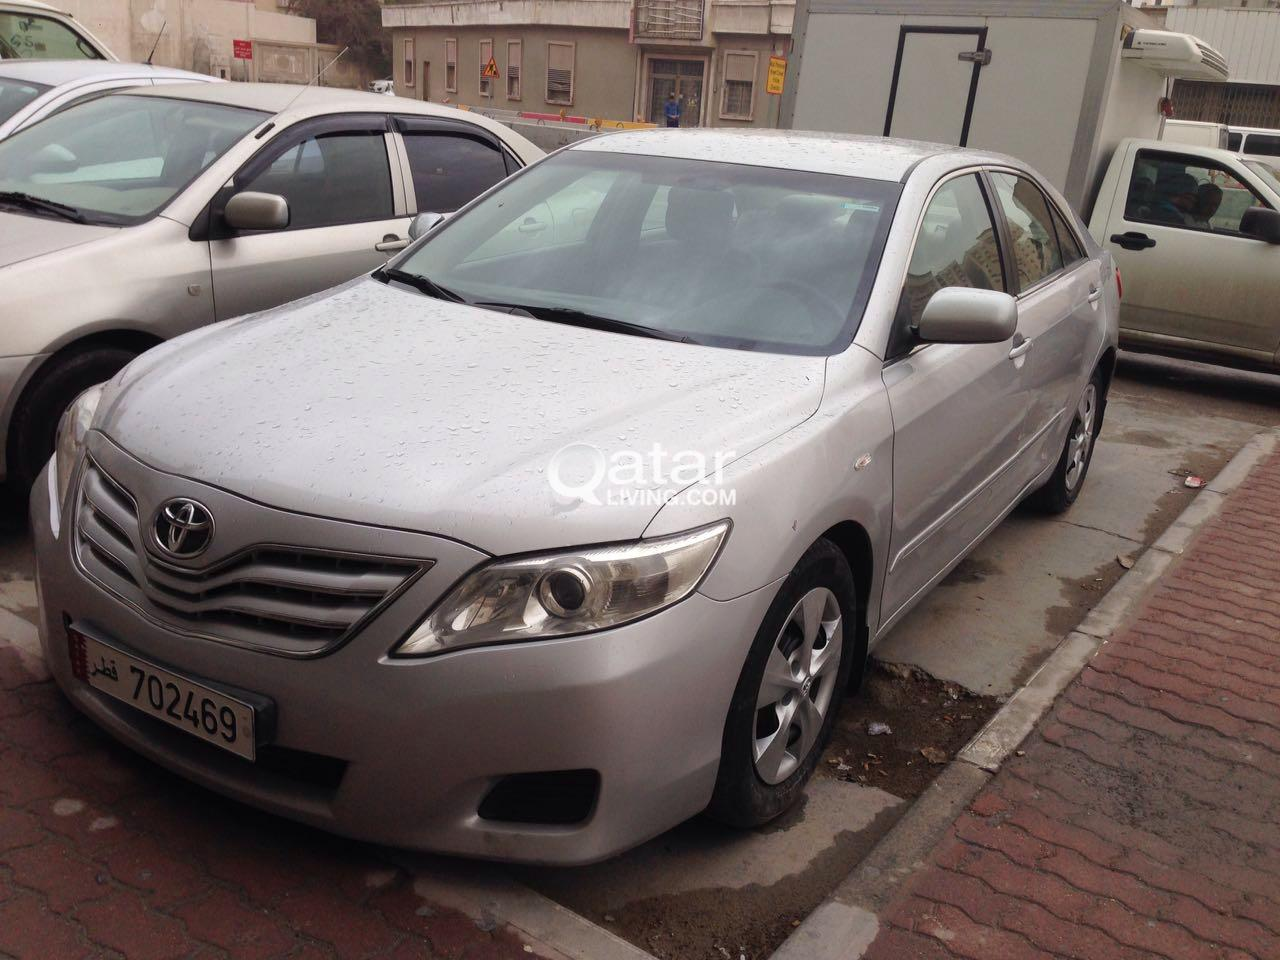 2010 Toyota Camry For Sale >> Toyota Camry 2010 For Sale Qatar Living